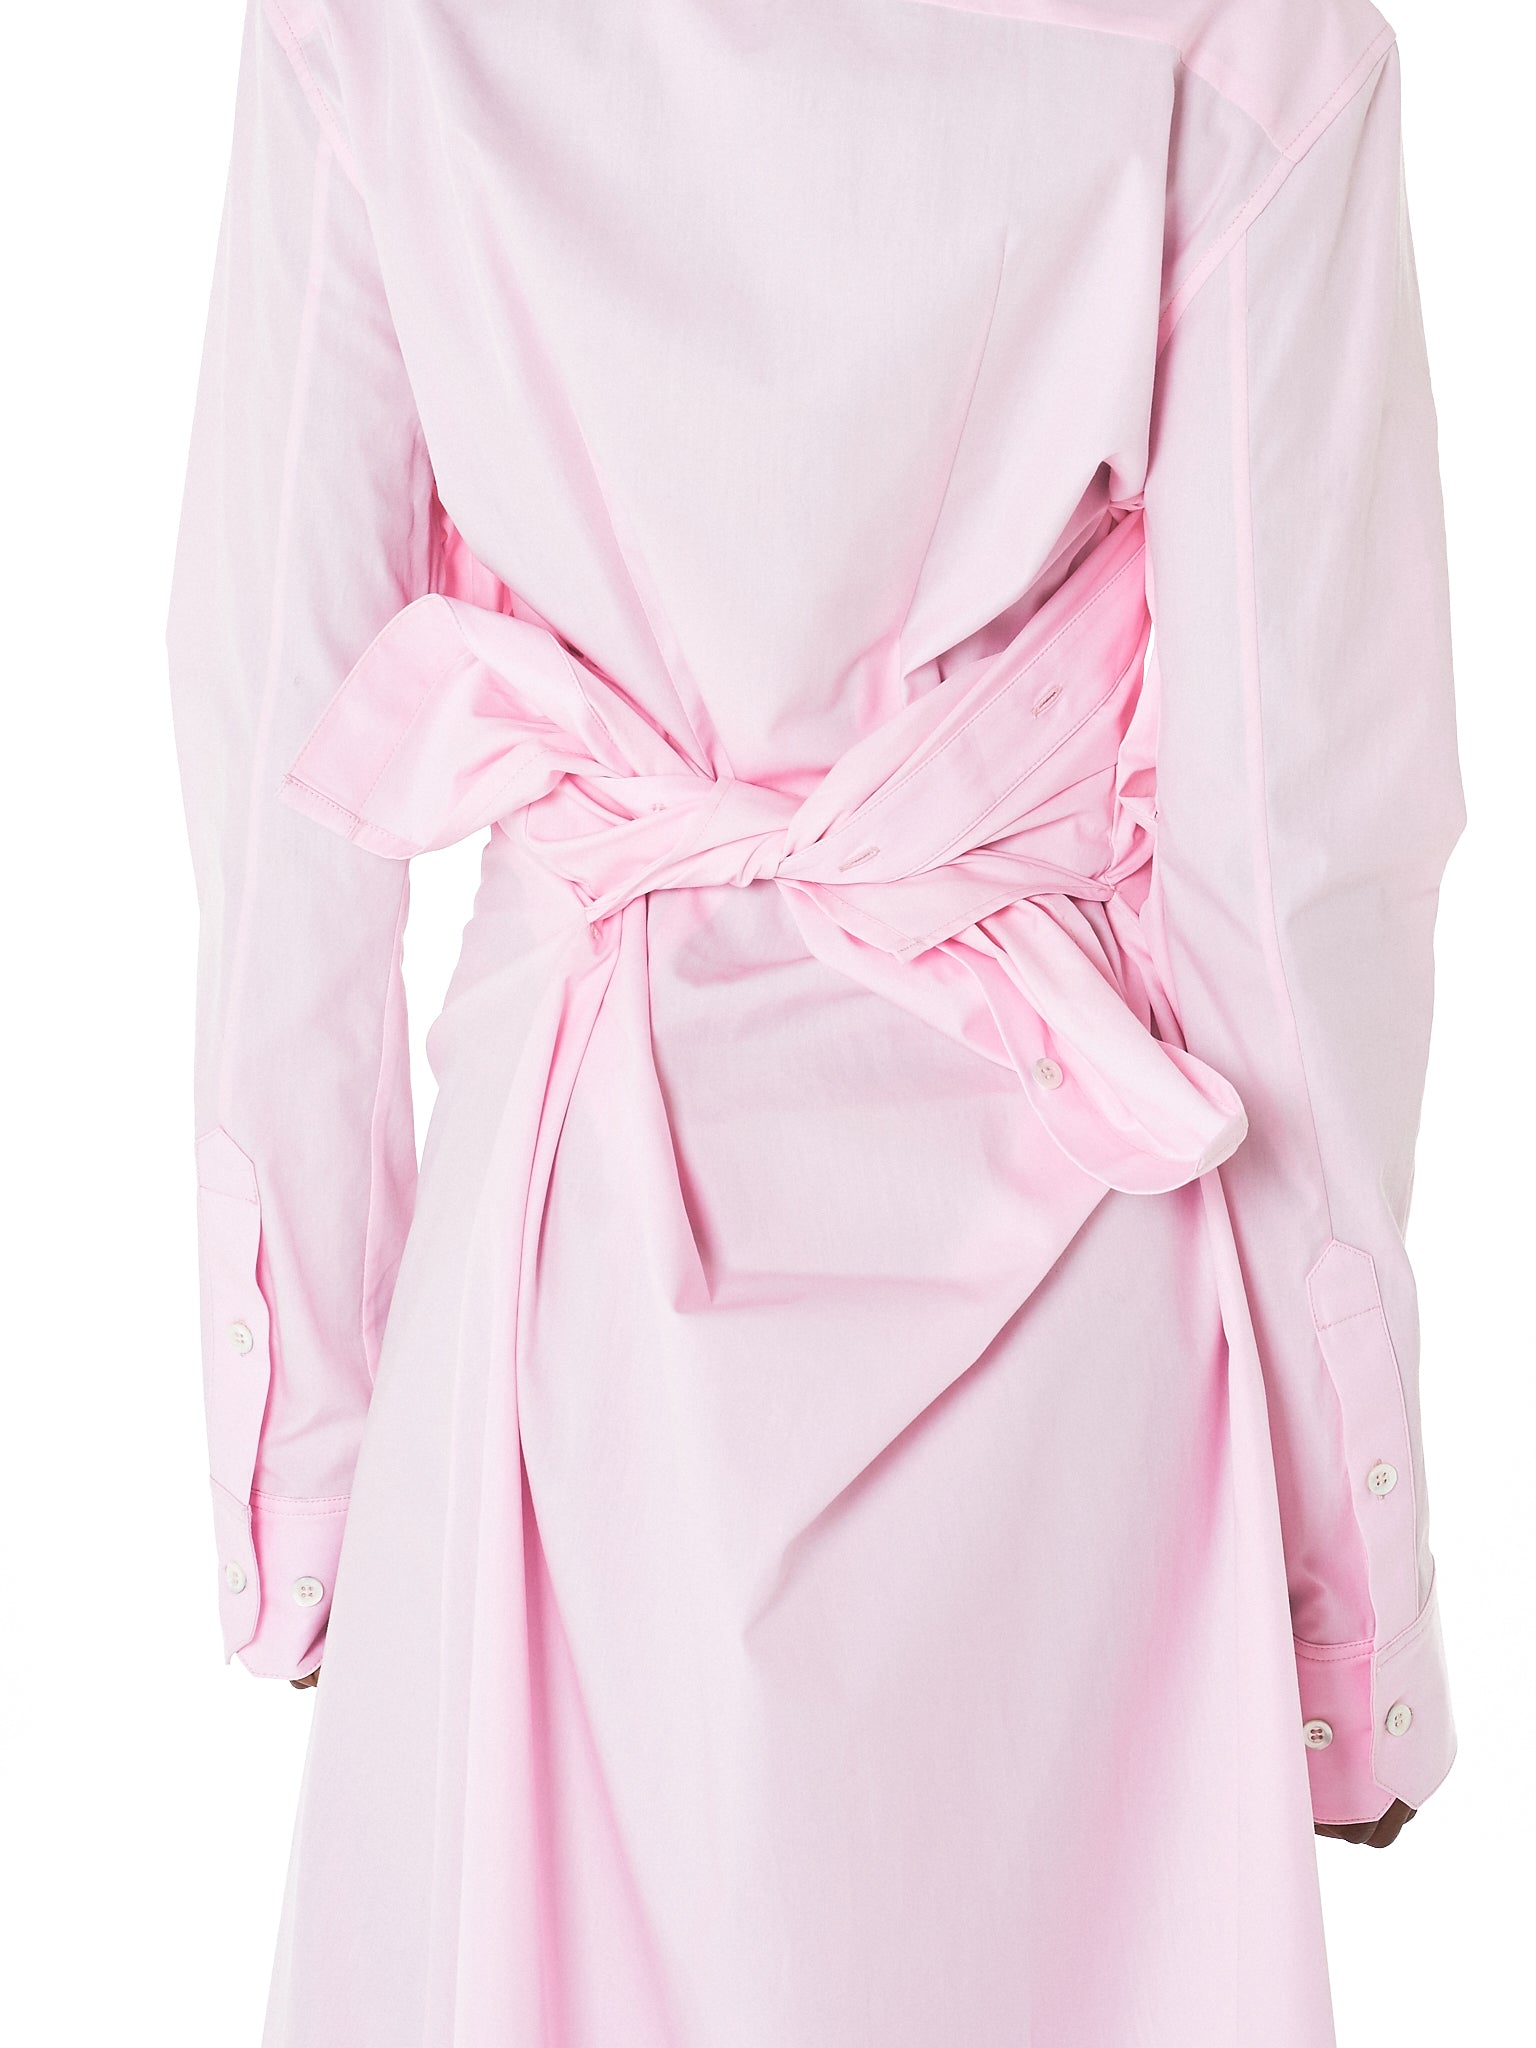 Y/Project Shirt Dress - Hlorenzo Detail 2